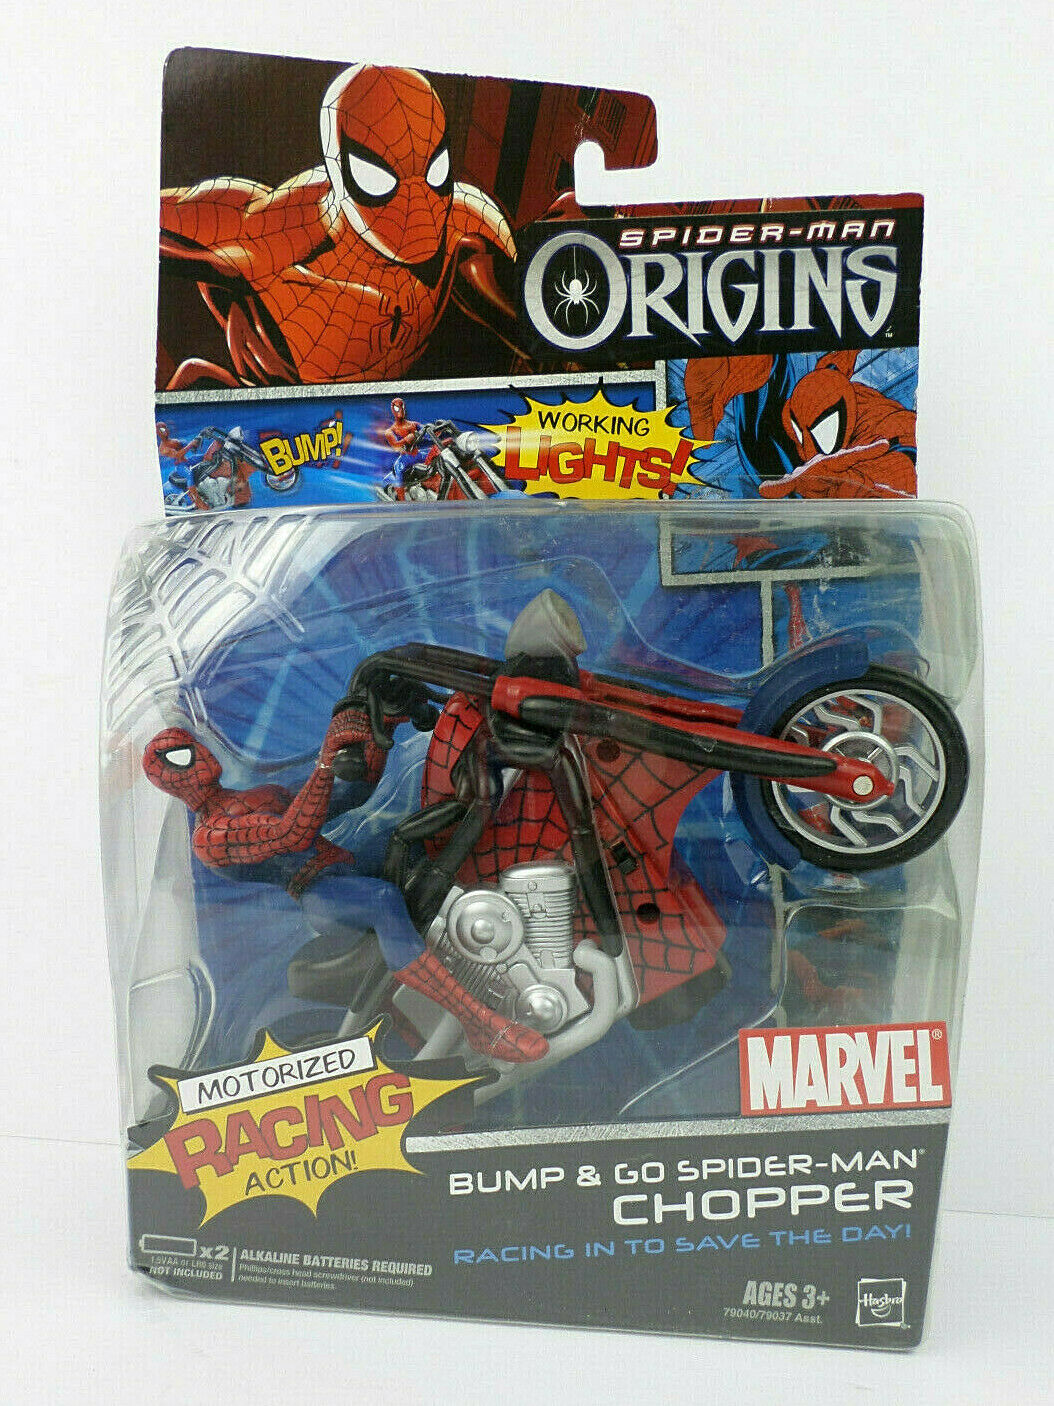 Marvel Spider-Man Chopper Motorizada Bump & Go con luces de trabajo 2006 orígenes